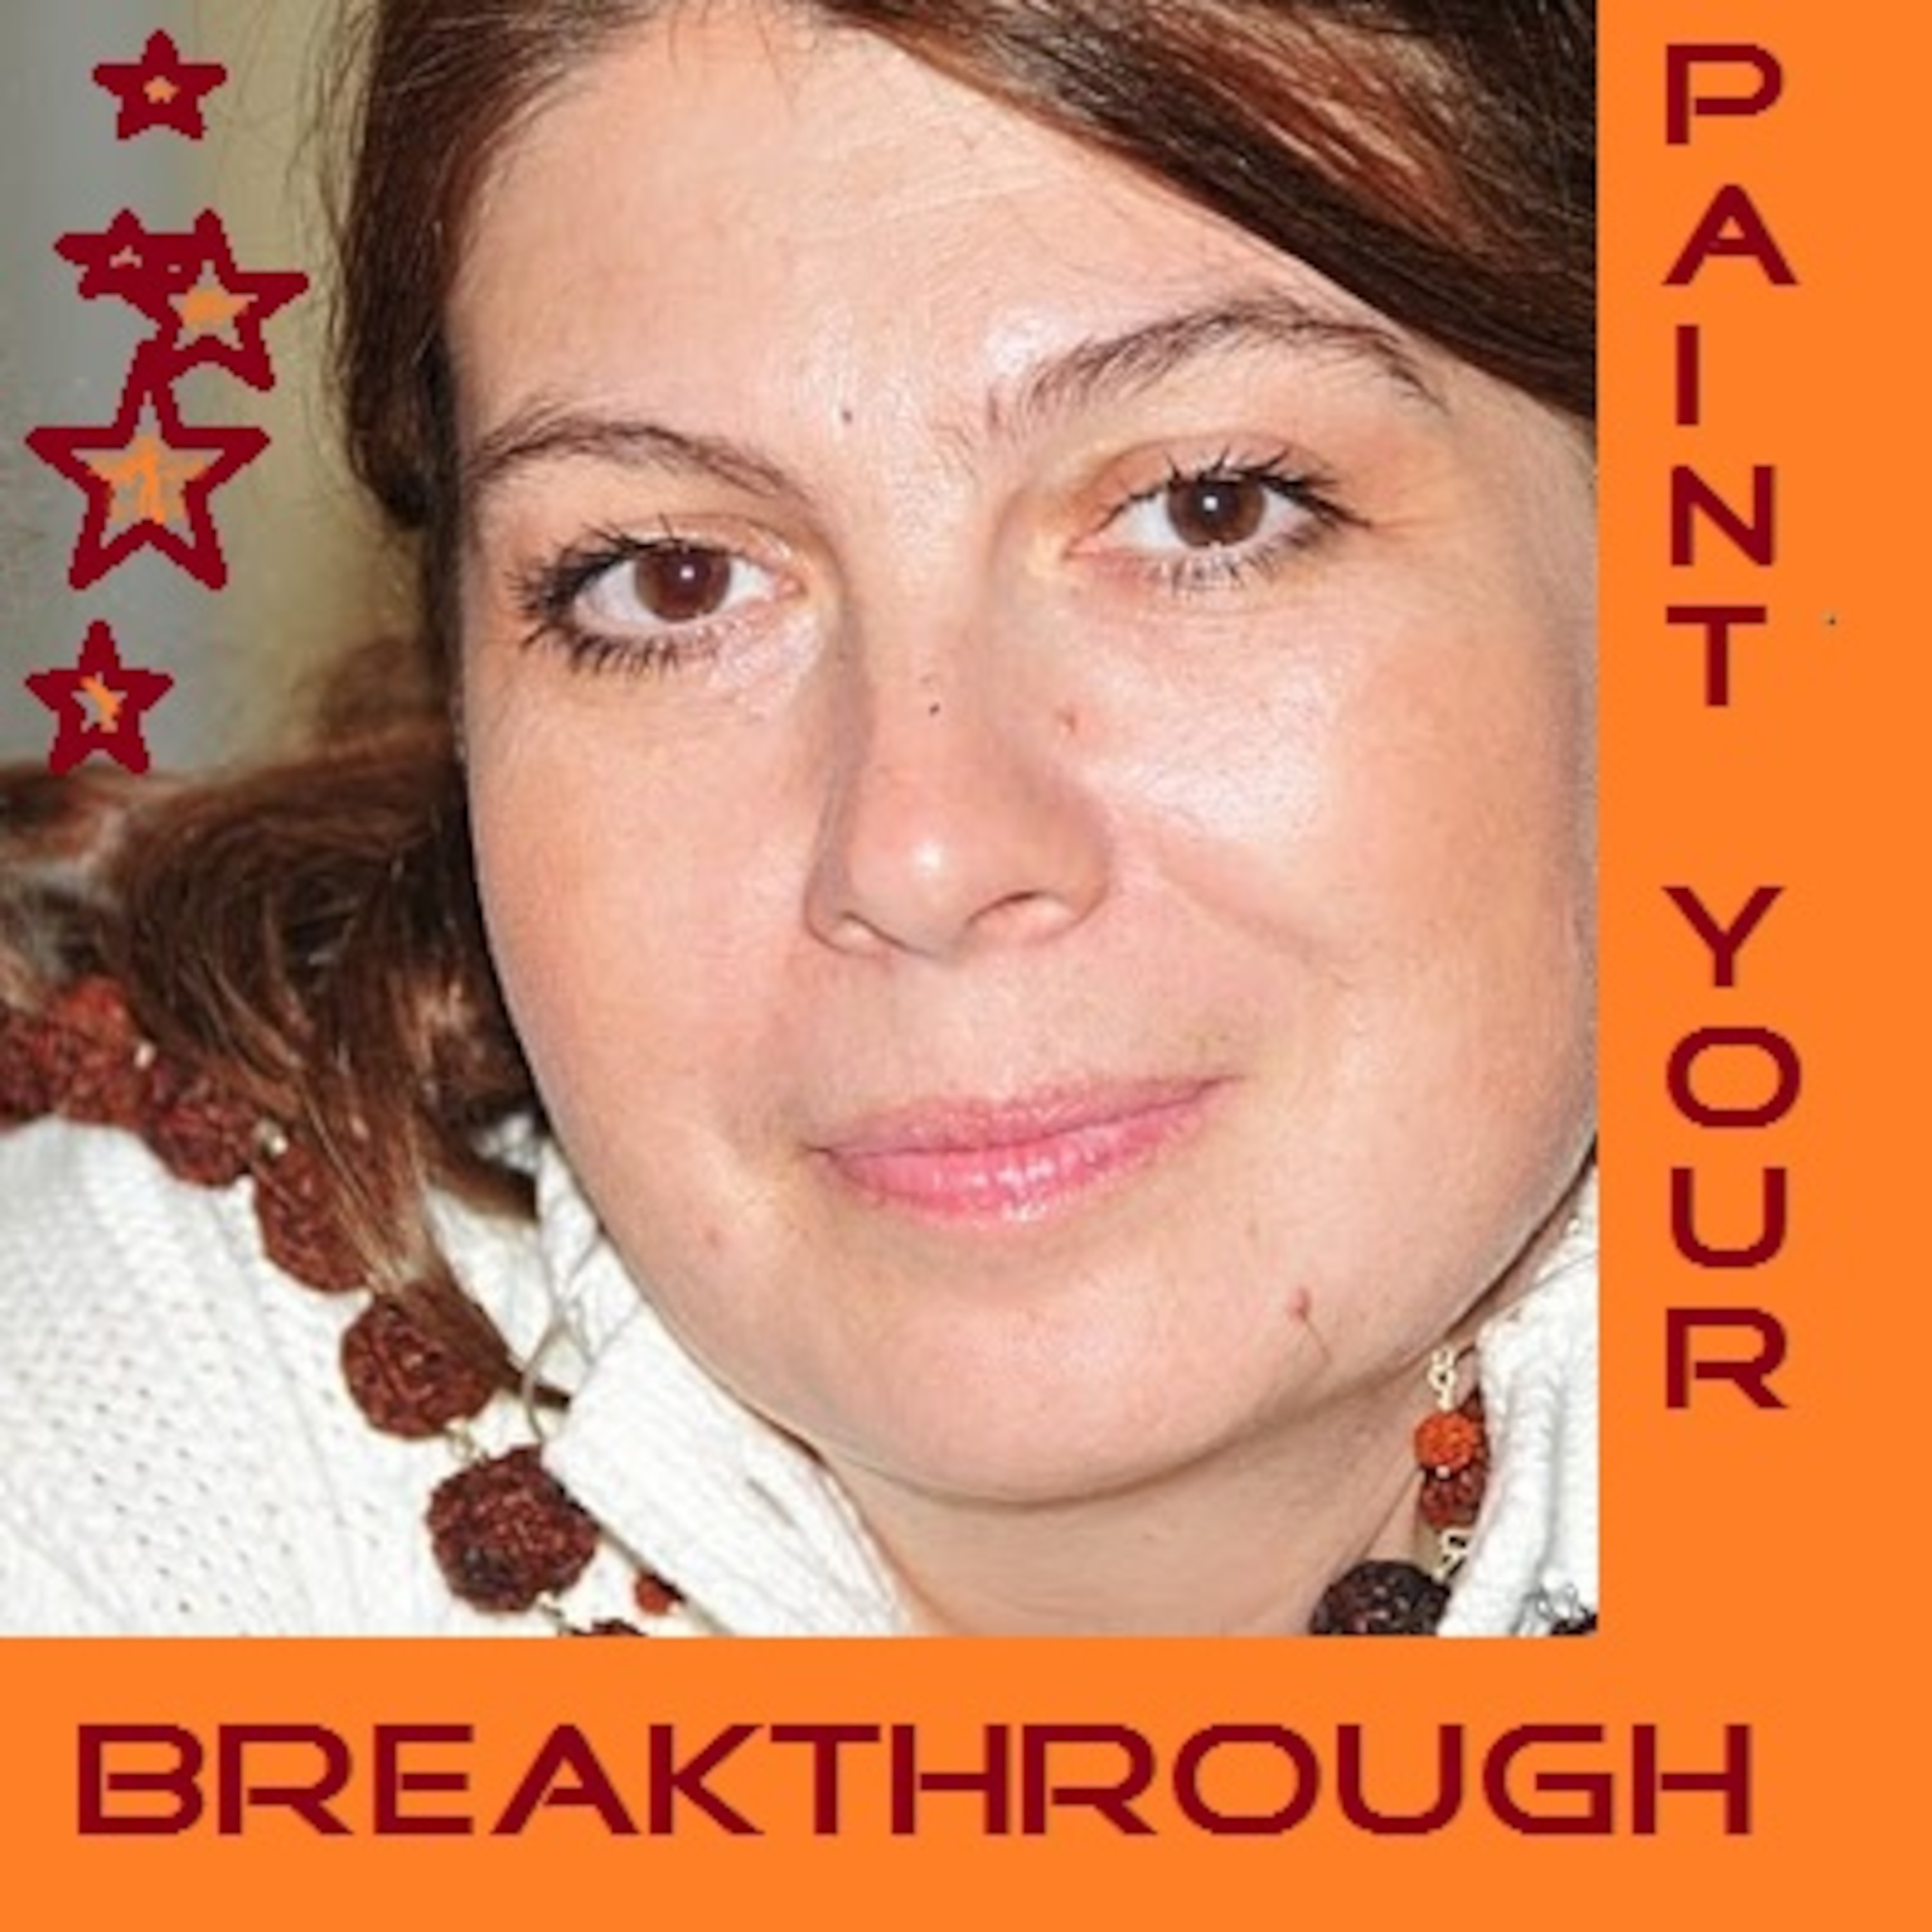 Paint Your Breakthrough - A word on creativity.